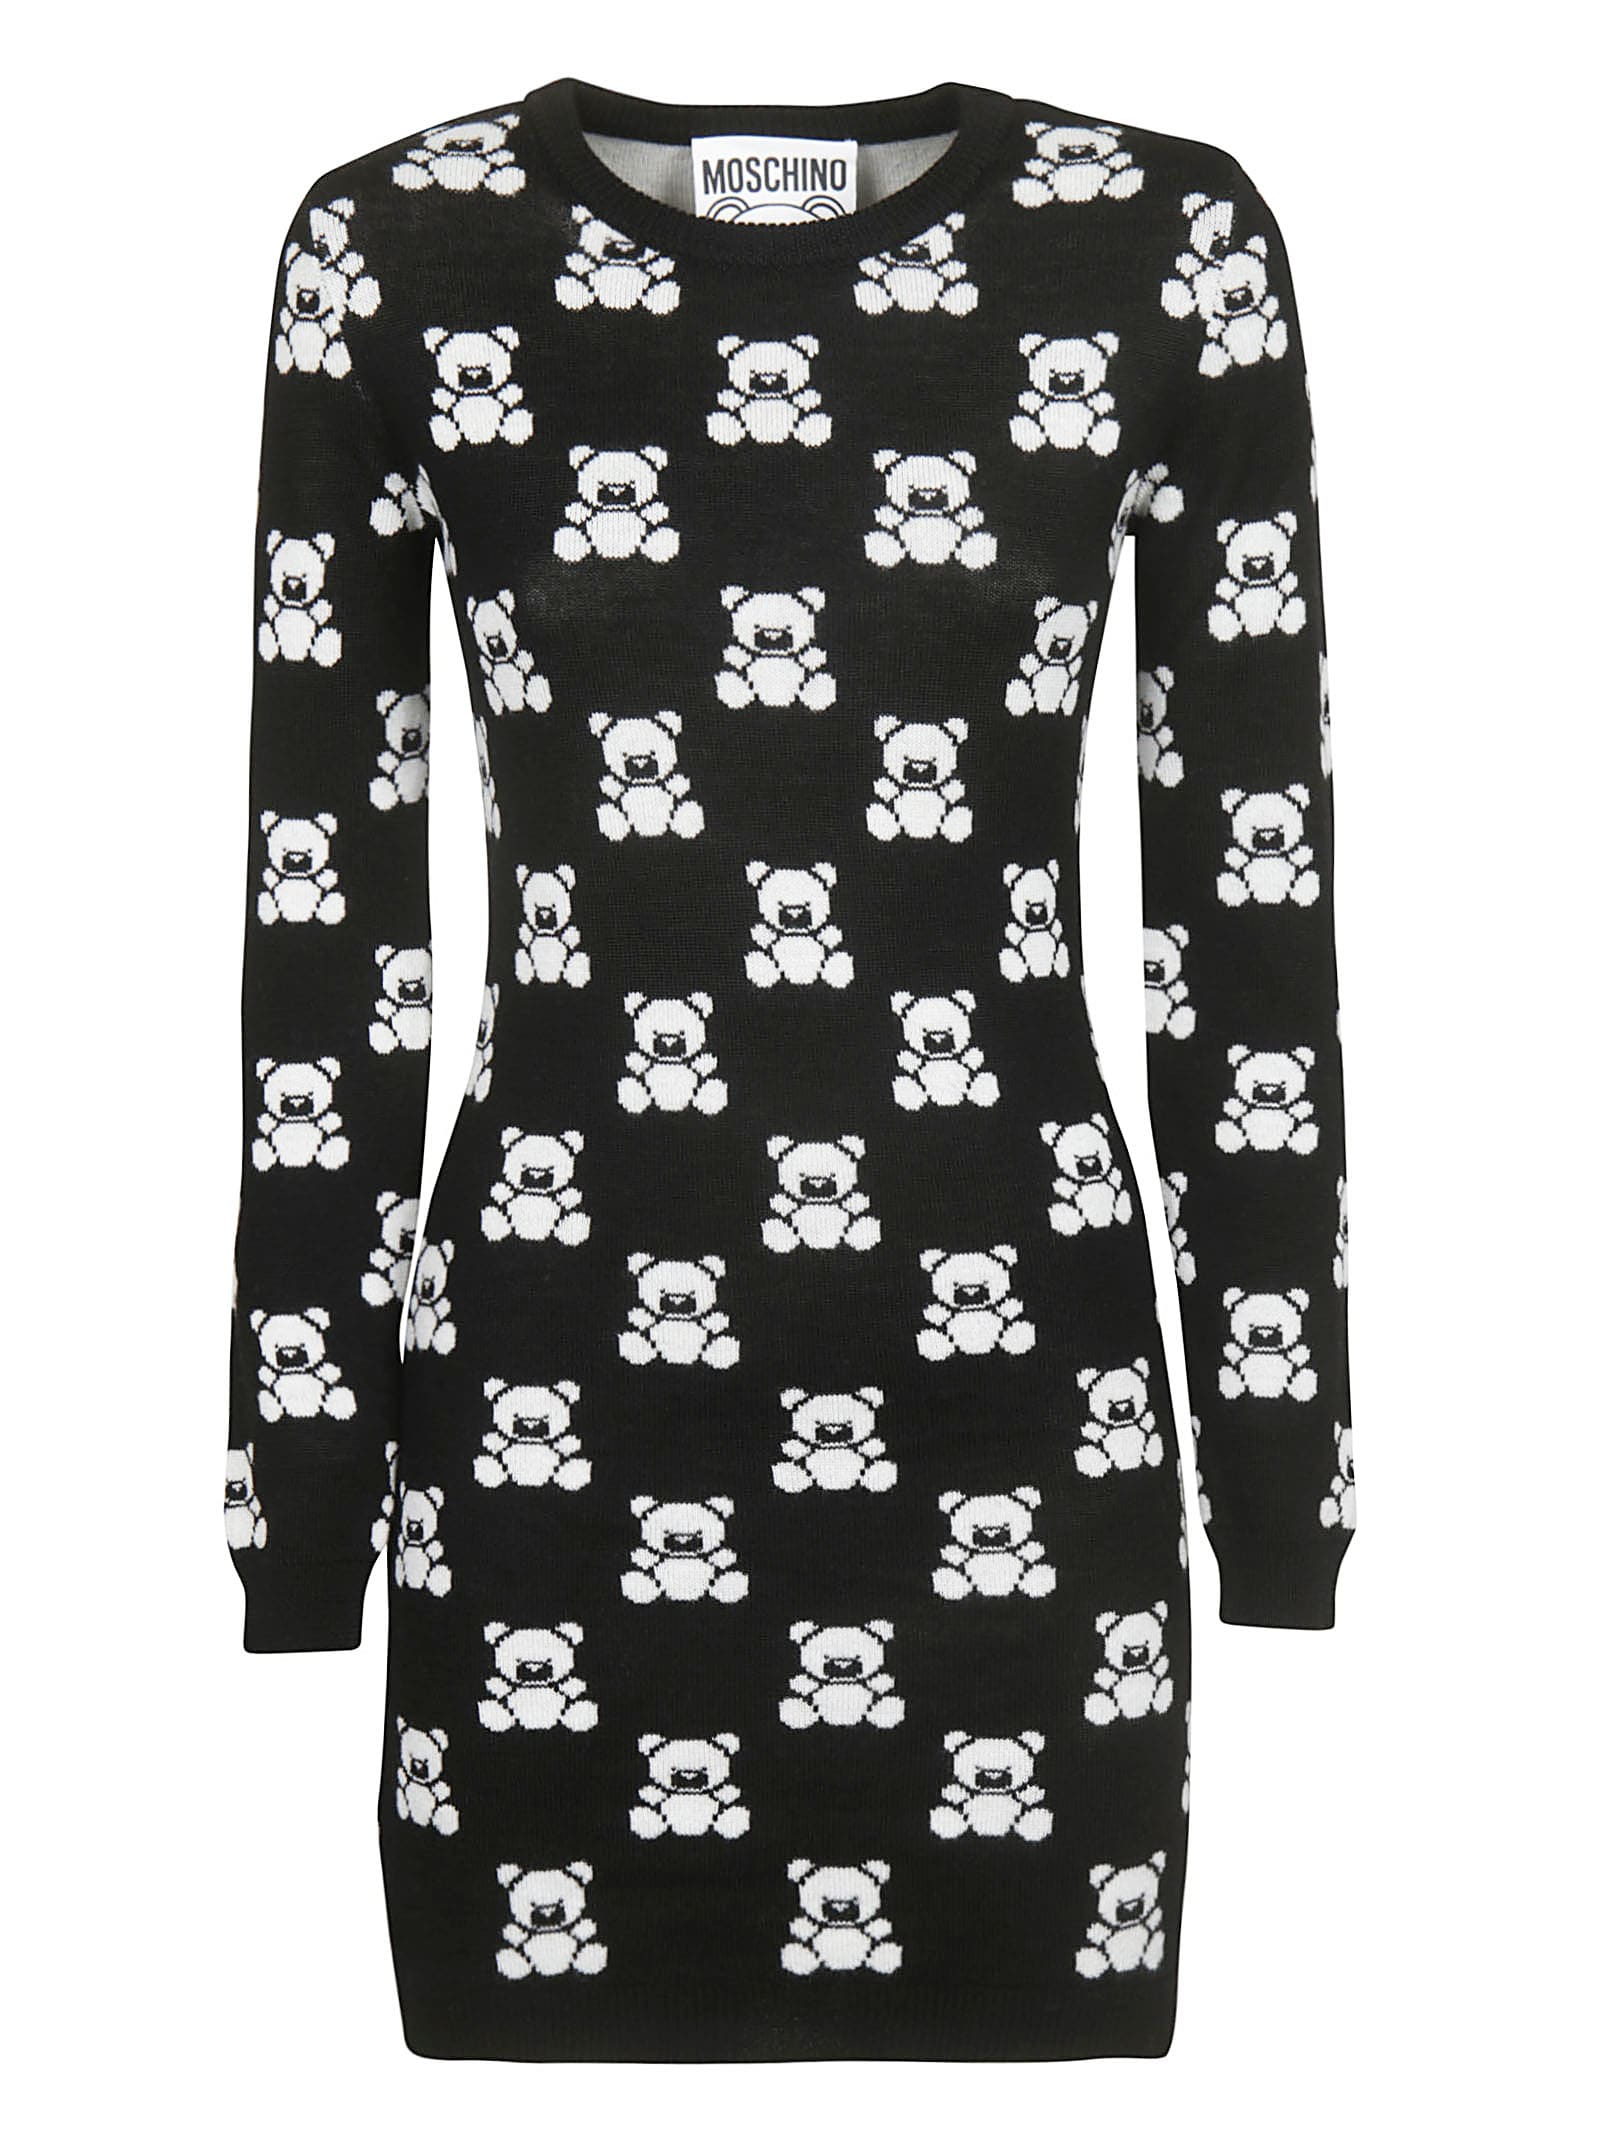 Moschino Teddy Intarsia Dress